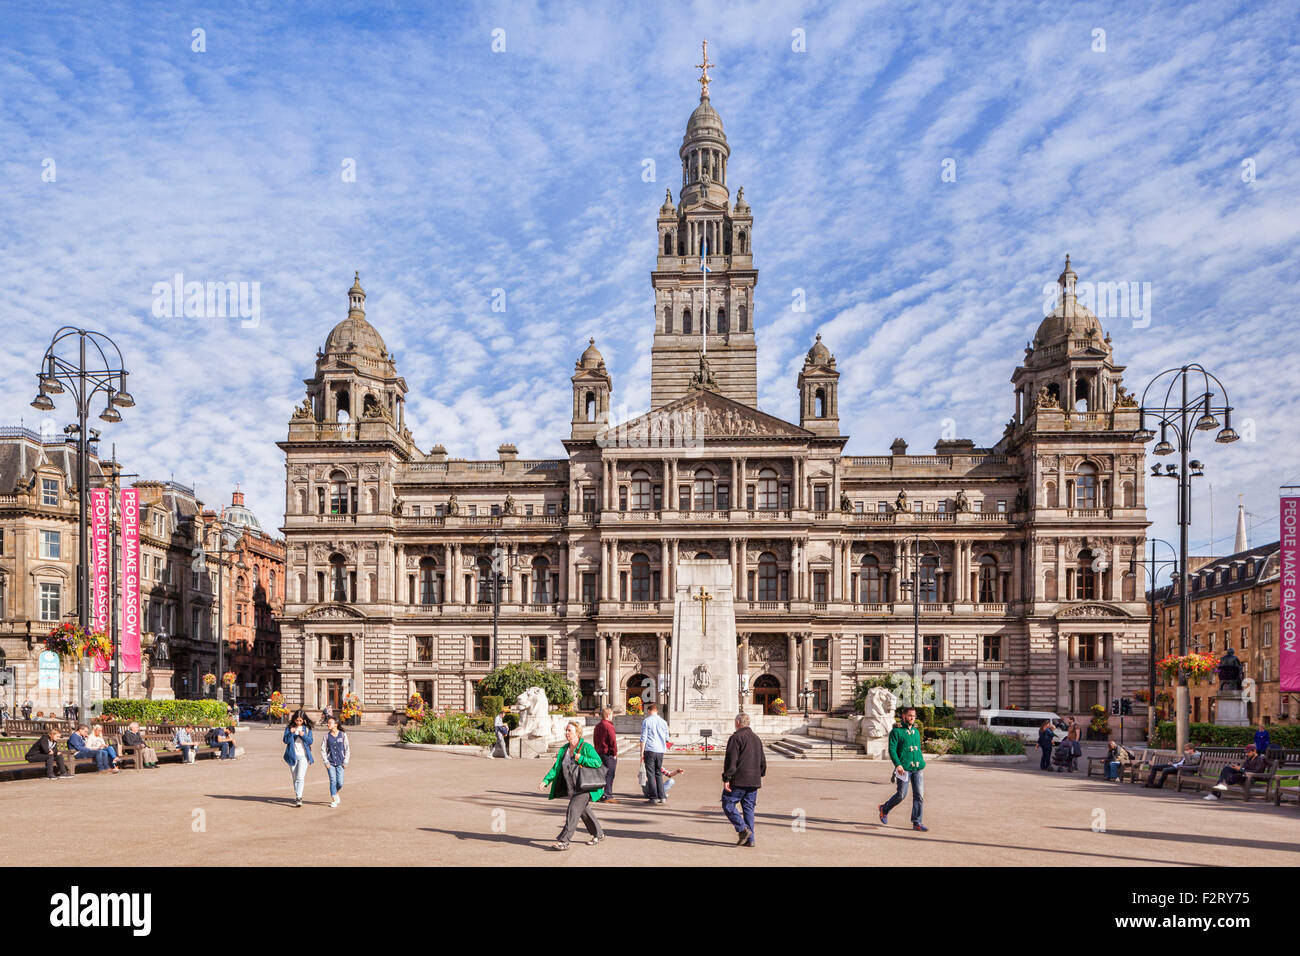 Glasgow City Chambers and George Square in the centre of Glasgow, Scotland. - Stock Image